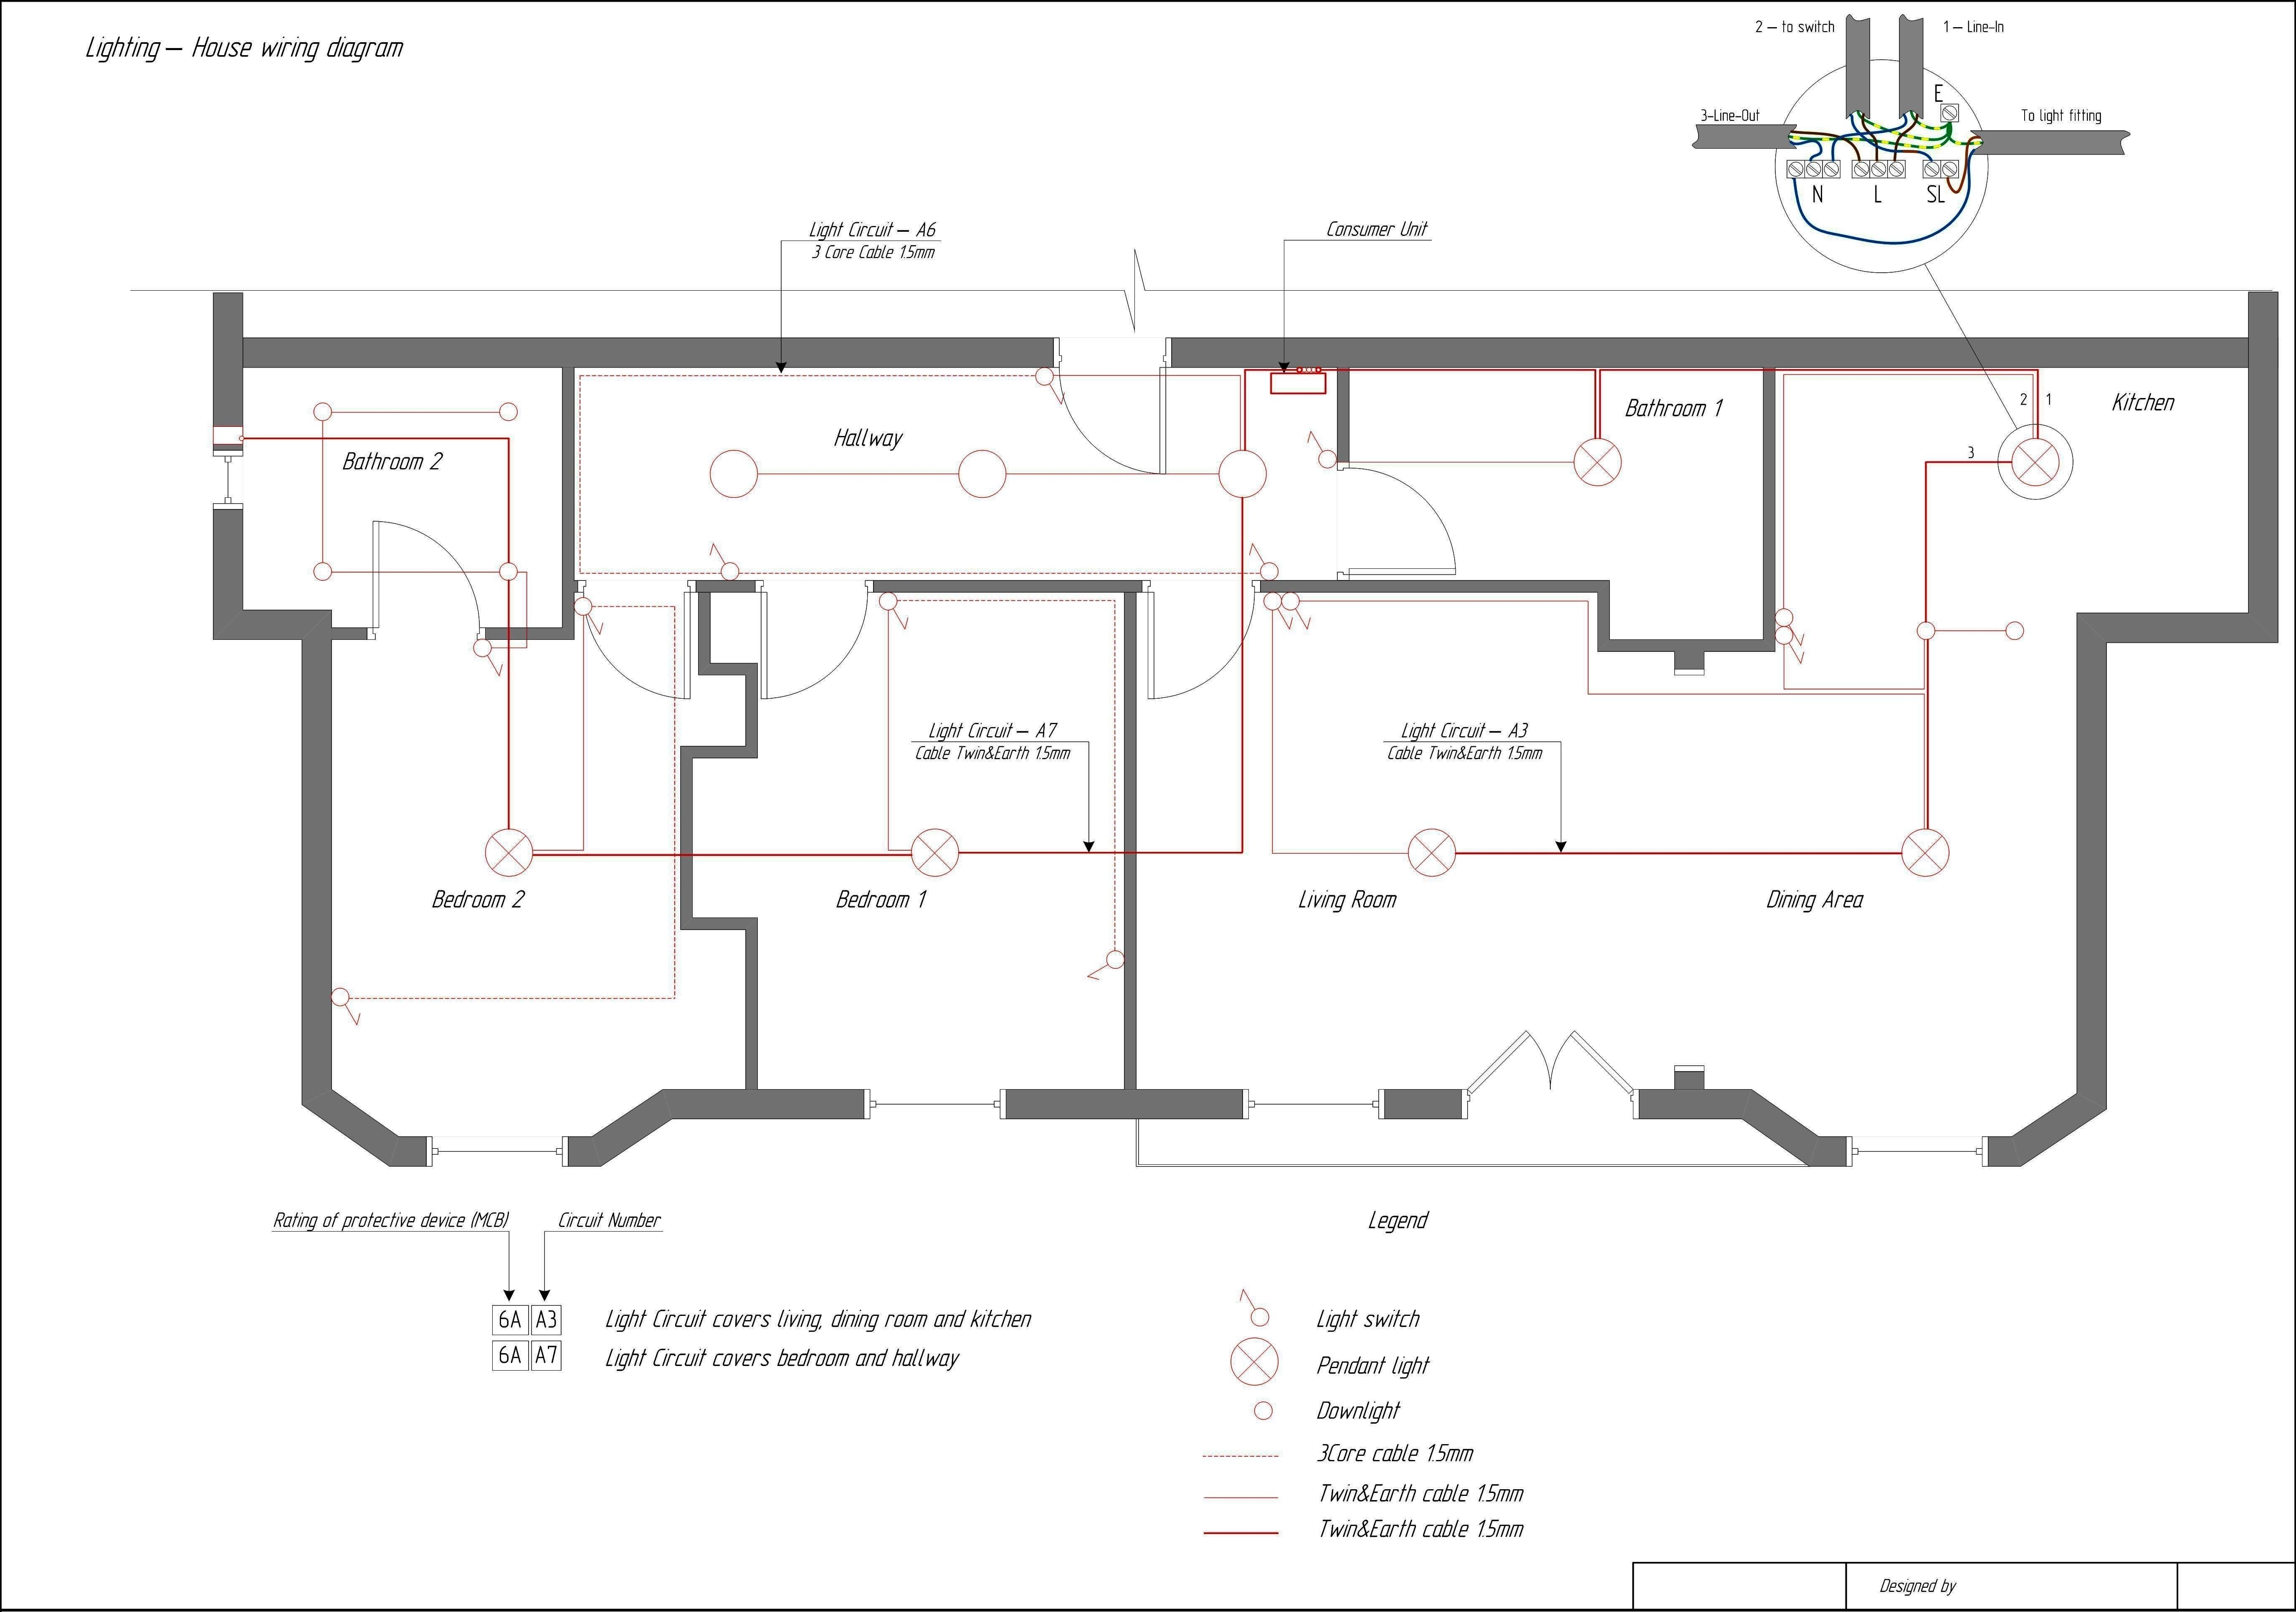 New Electrical Wiring Design Diagram Wiringdiagram Diagramming Diagramm Visuals Visuali House Wiring Electrical Circuit Diagram Electrical Wiring Colours